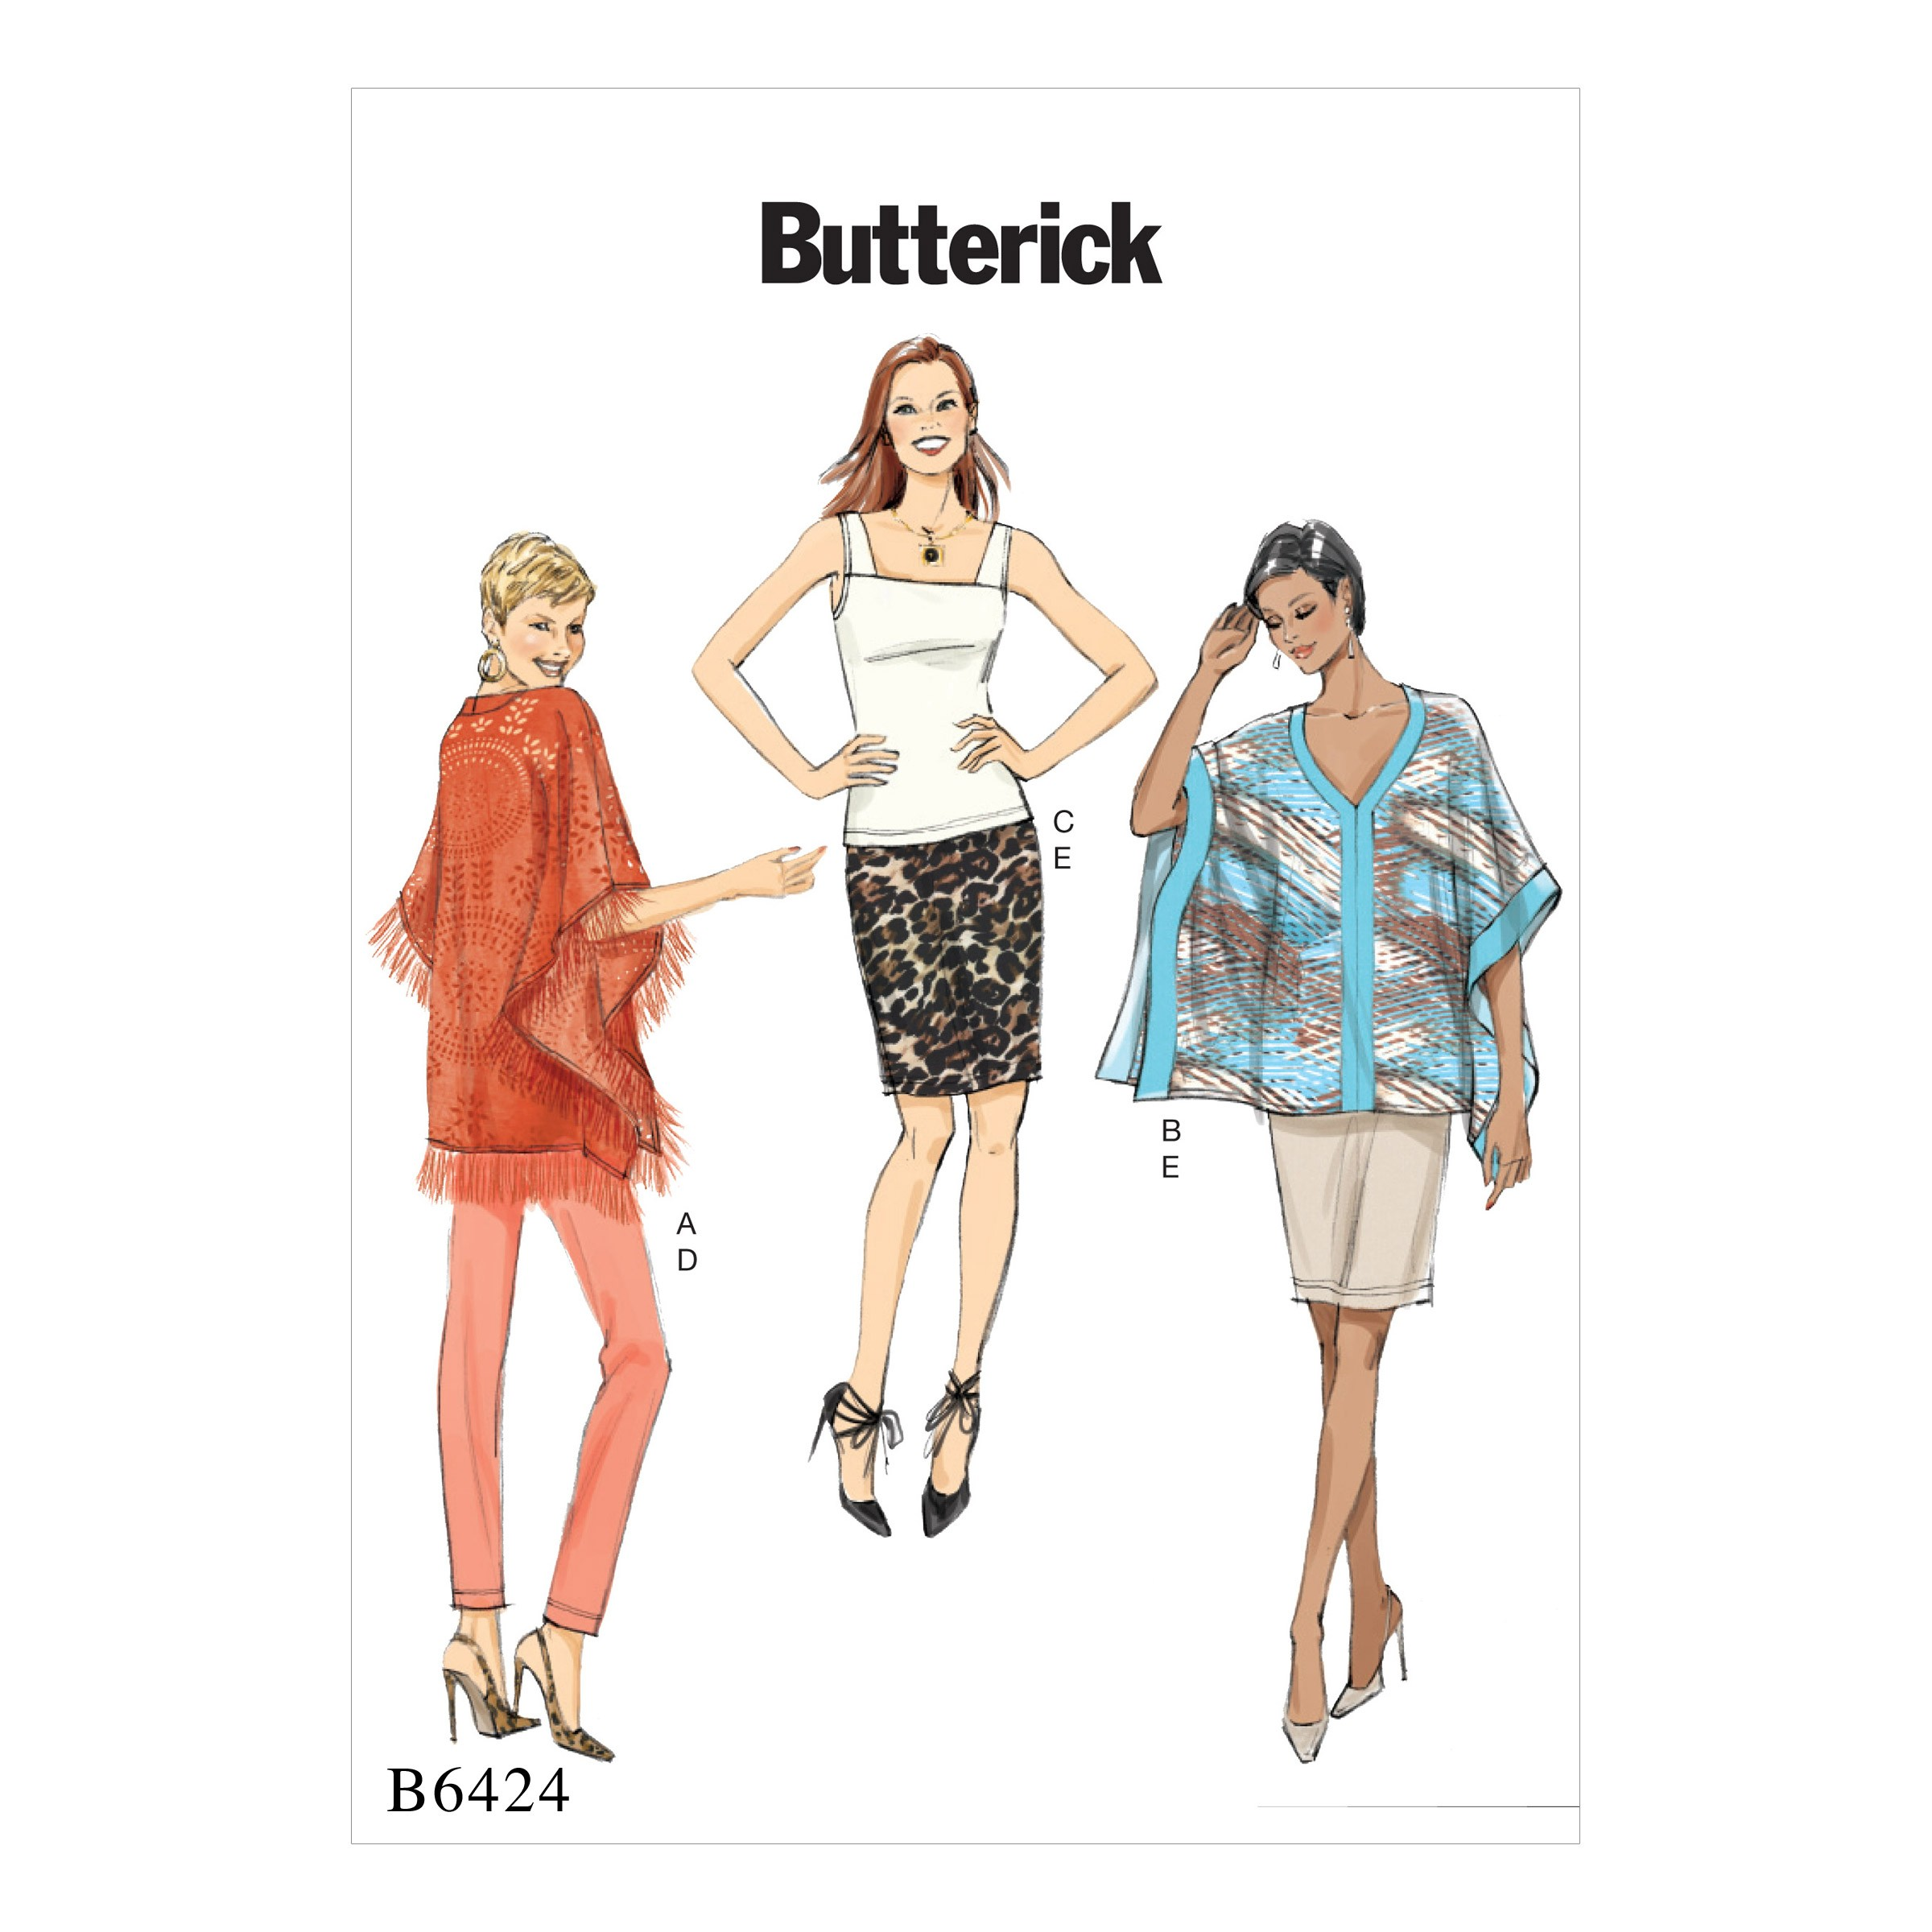 Butterick Sewing Pattern 6424 Misses' Poncho Sleeveless Top Skirt & Trousers